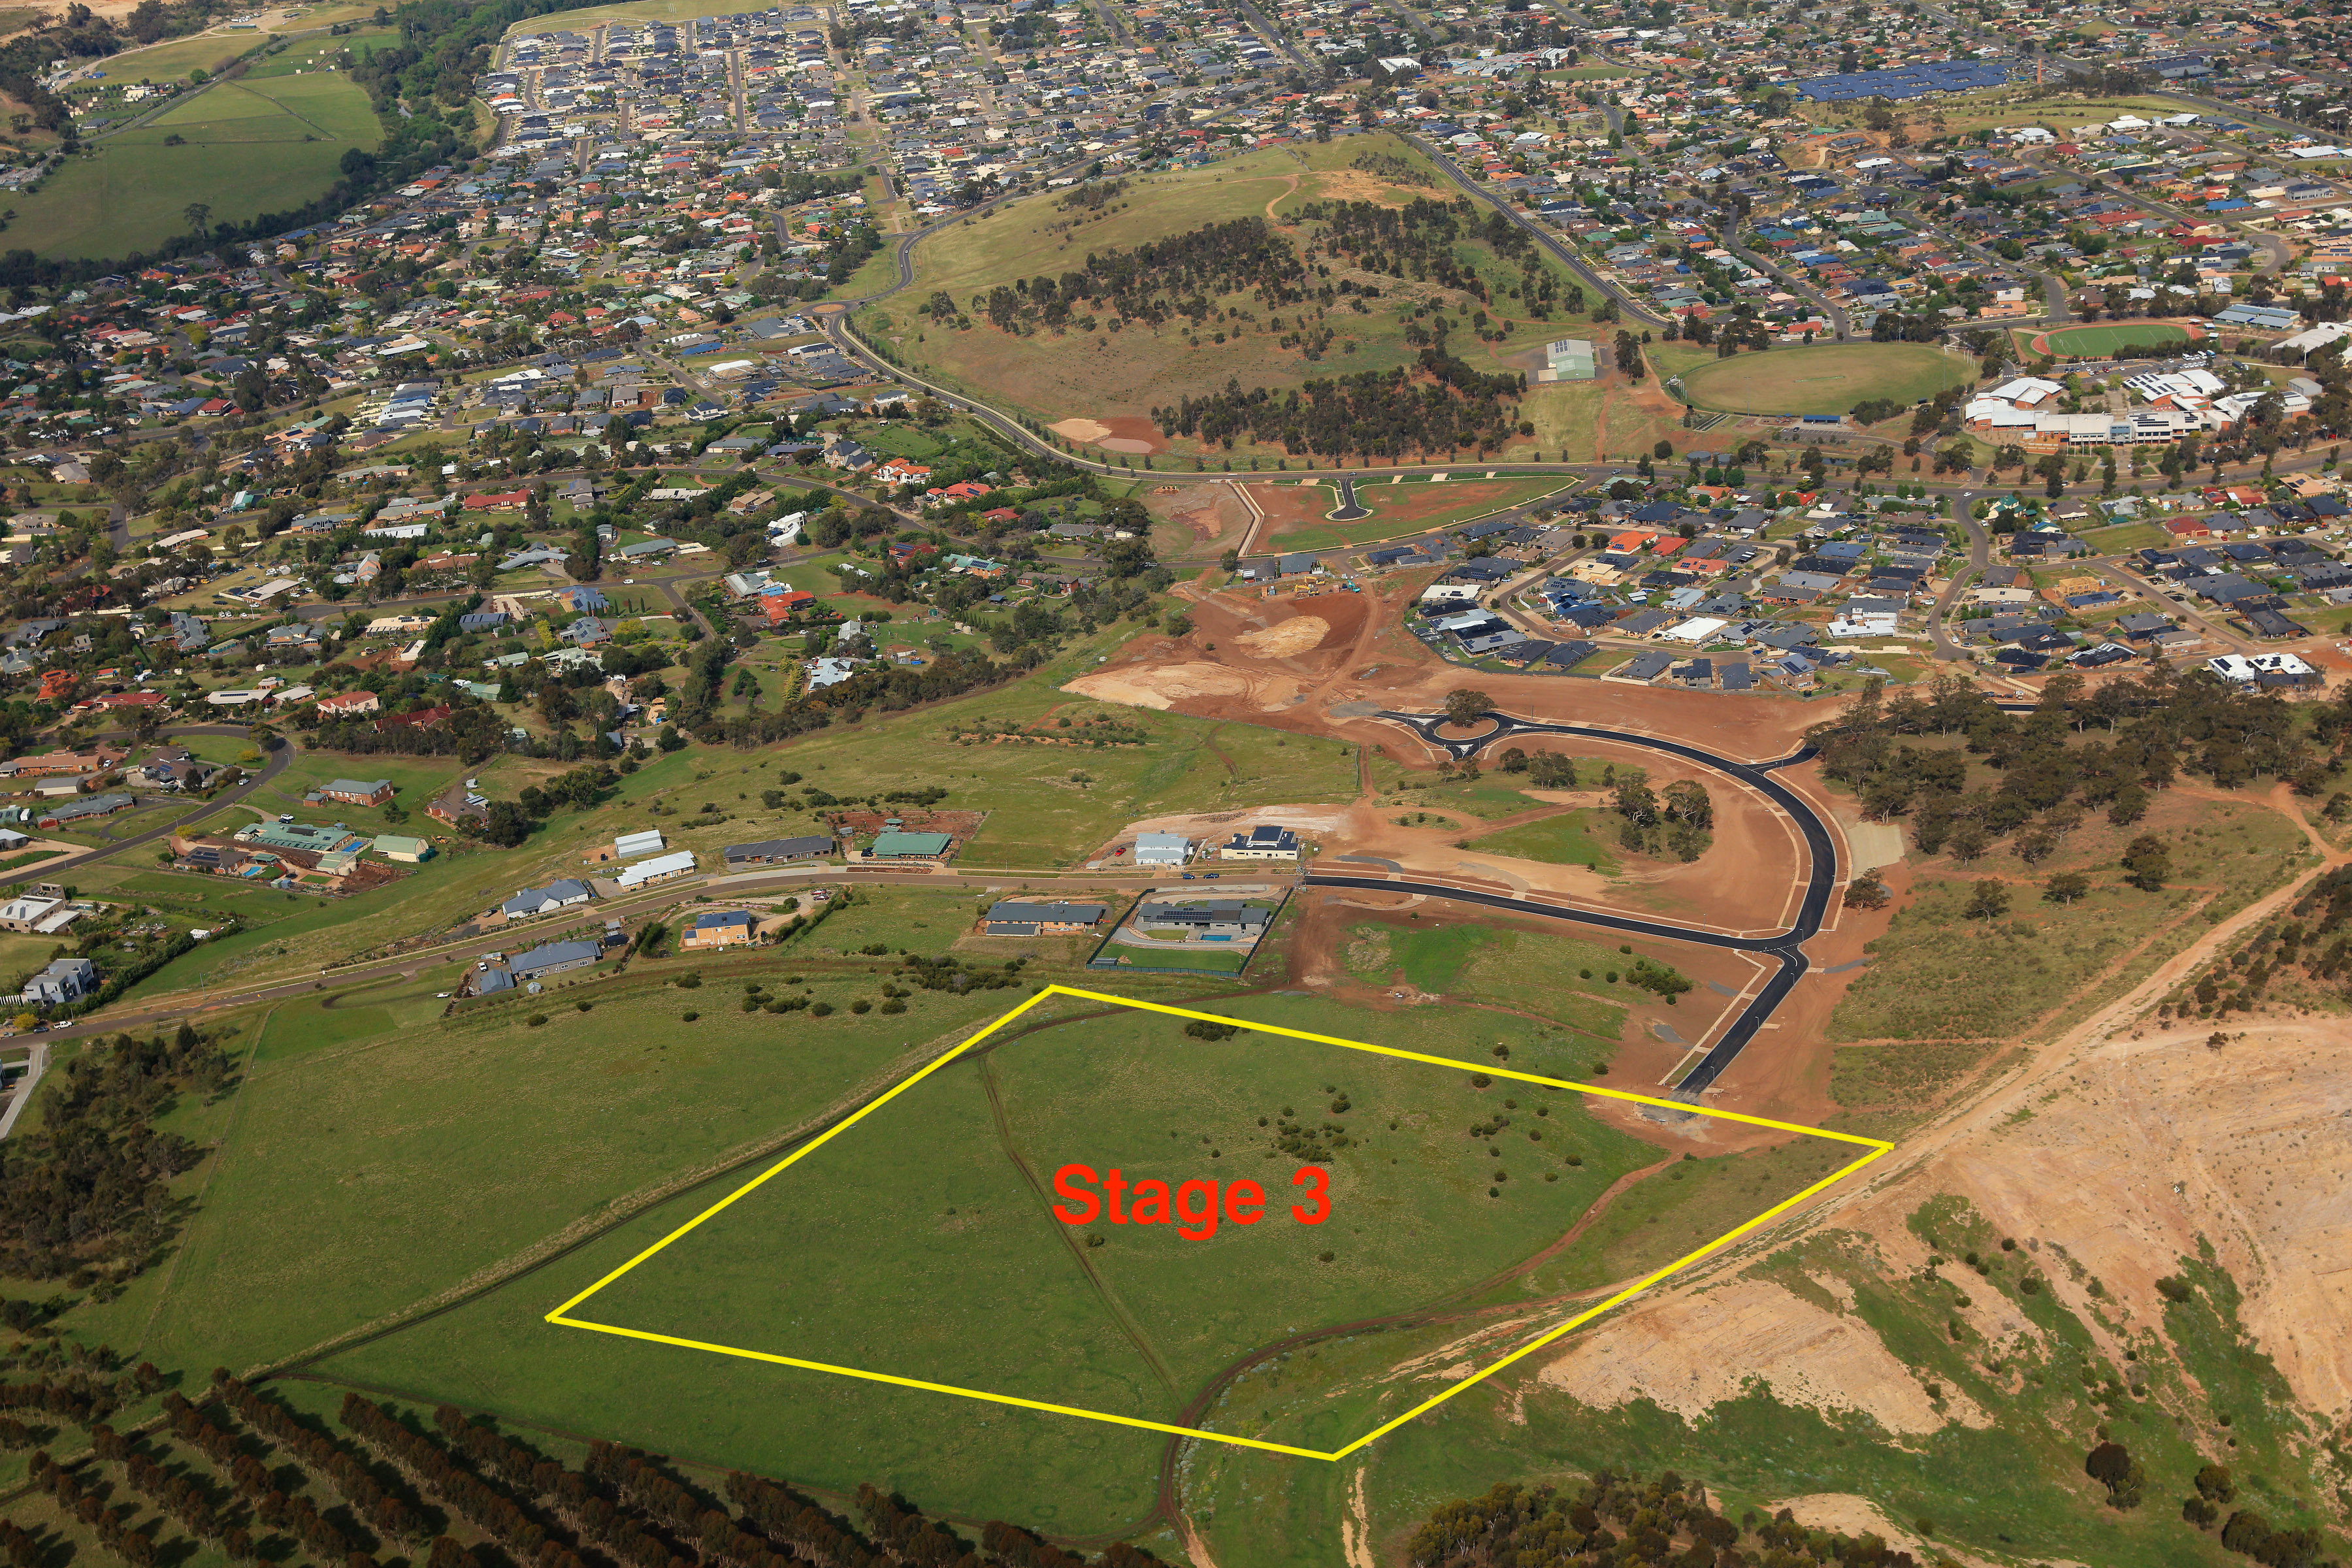 Stage 3 - Aerial Location